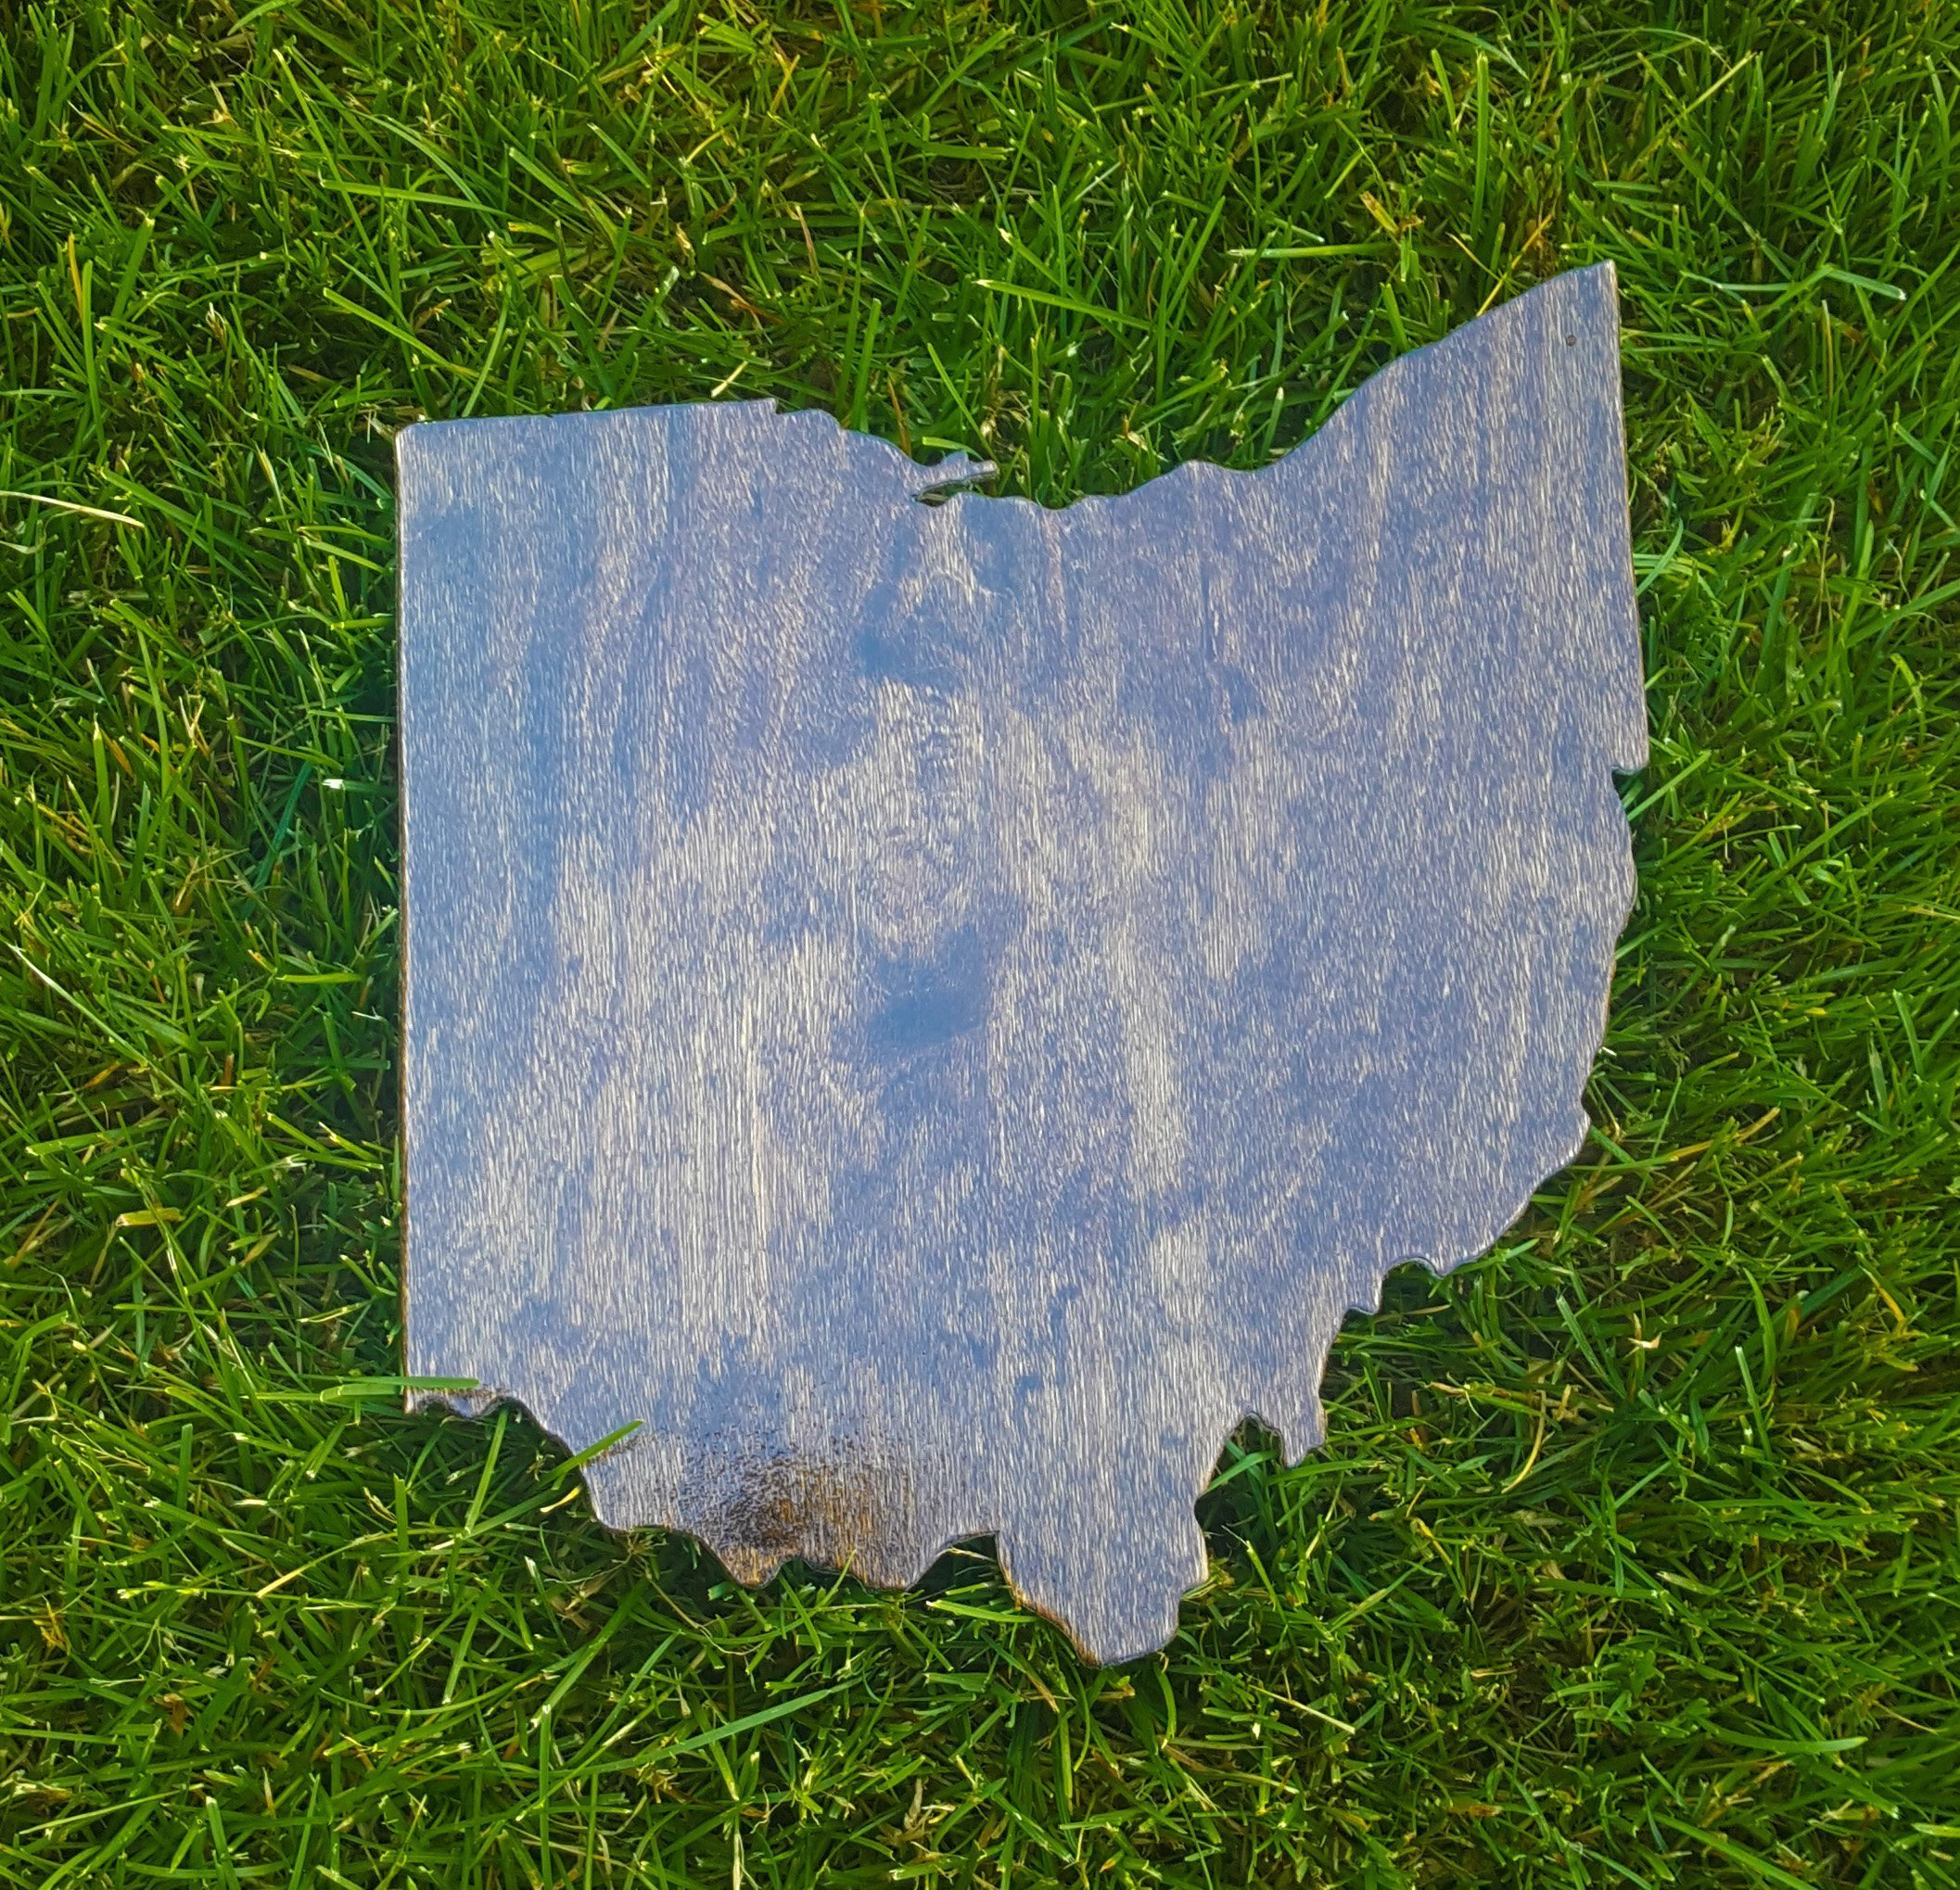 Rustic Ohio Wooden Gallery Wall Art Cutout Office College Dorm Home Bedroom Decor